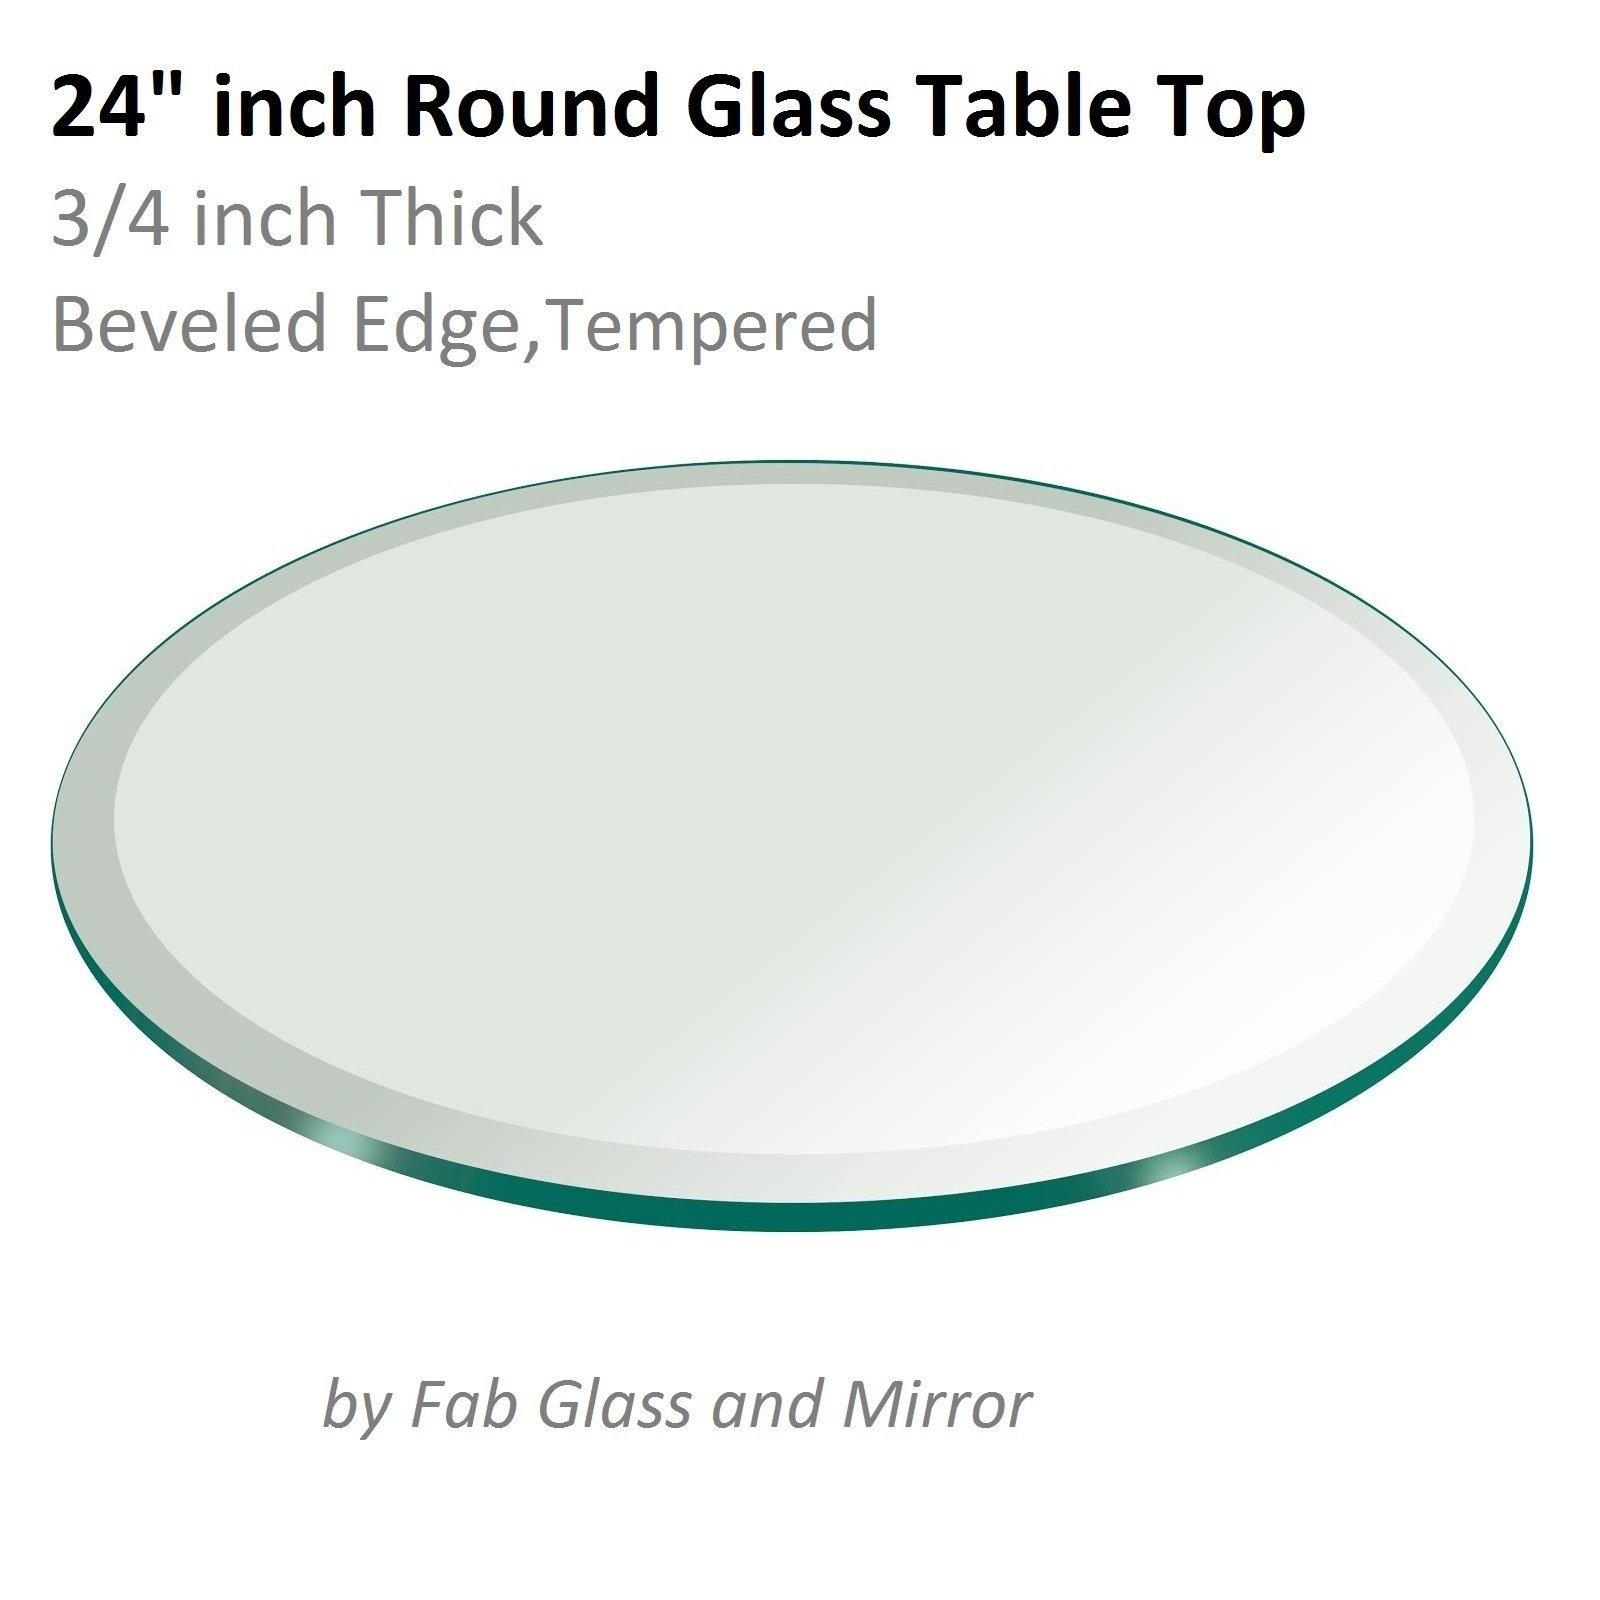 Fab Glass and Mirror 24'' Inch Round Glass Table Top 3/4'' Thick Tempered Beveled Edge